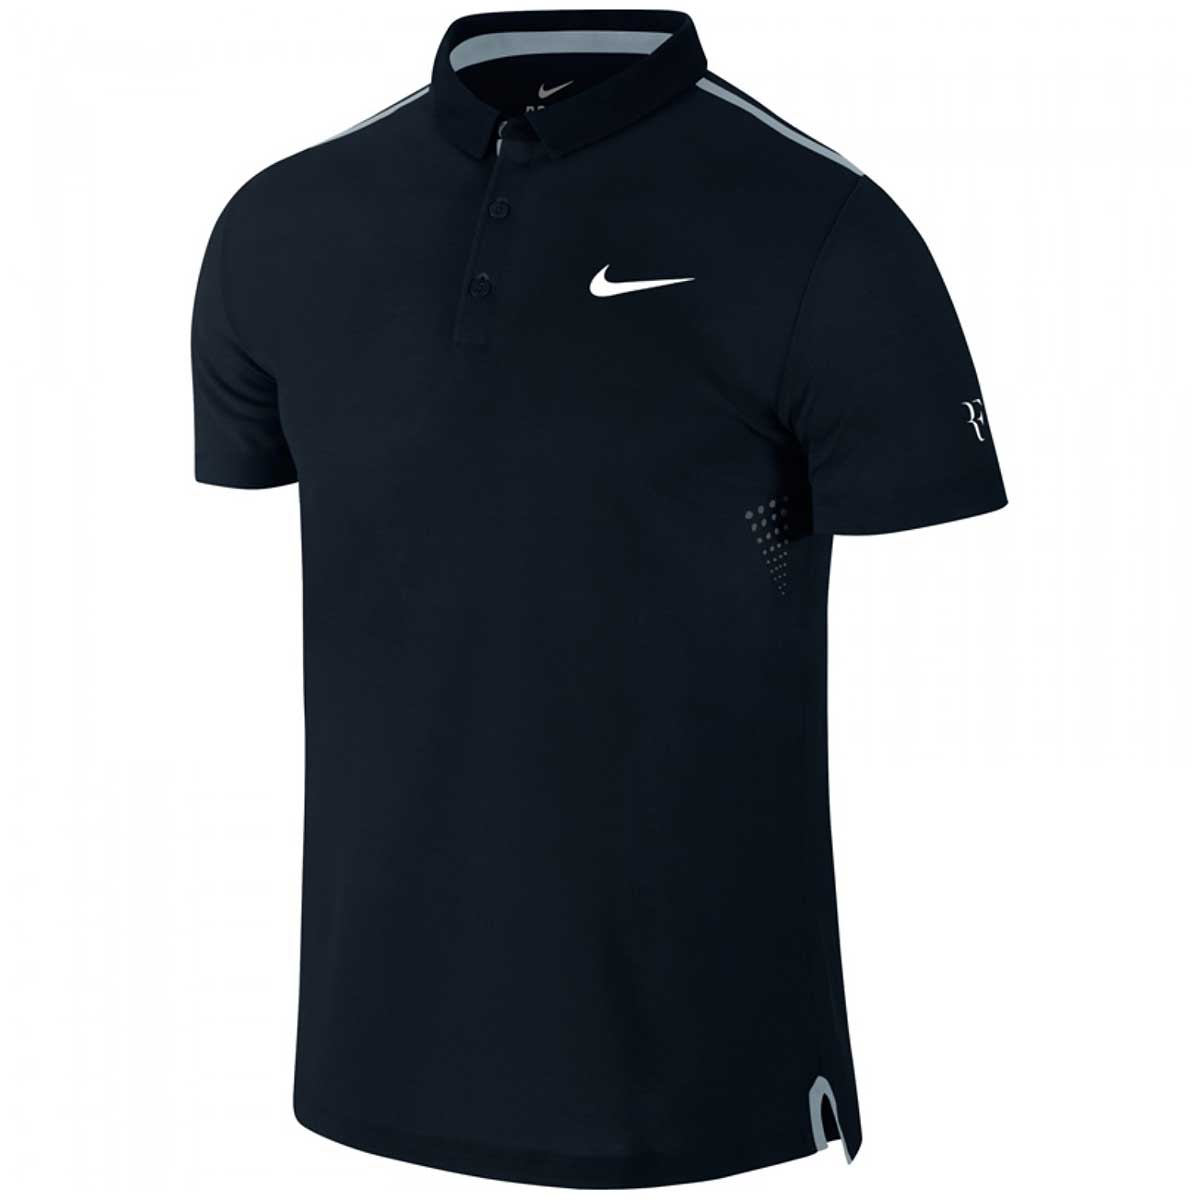 Buy Nike RF Advantage Premier Polo T-Shirt (Black) Online 619155425ad9